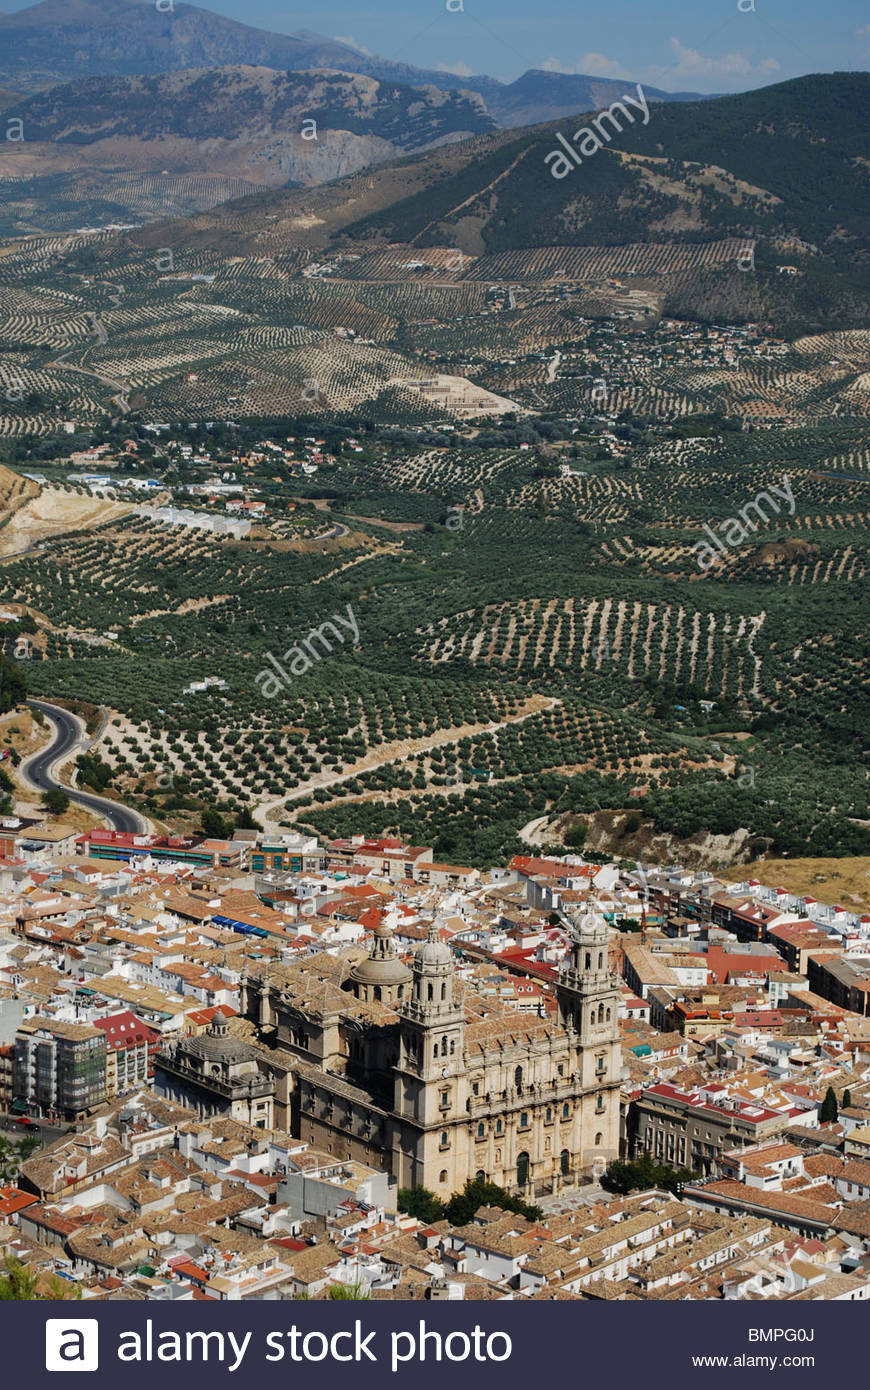 Cathedral with views over the surrounding city rooftops, Jaen, Jaen Province, Andalucia, Spain, Western Europe. Stock Photo